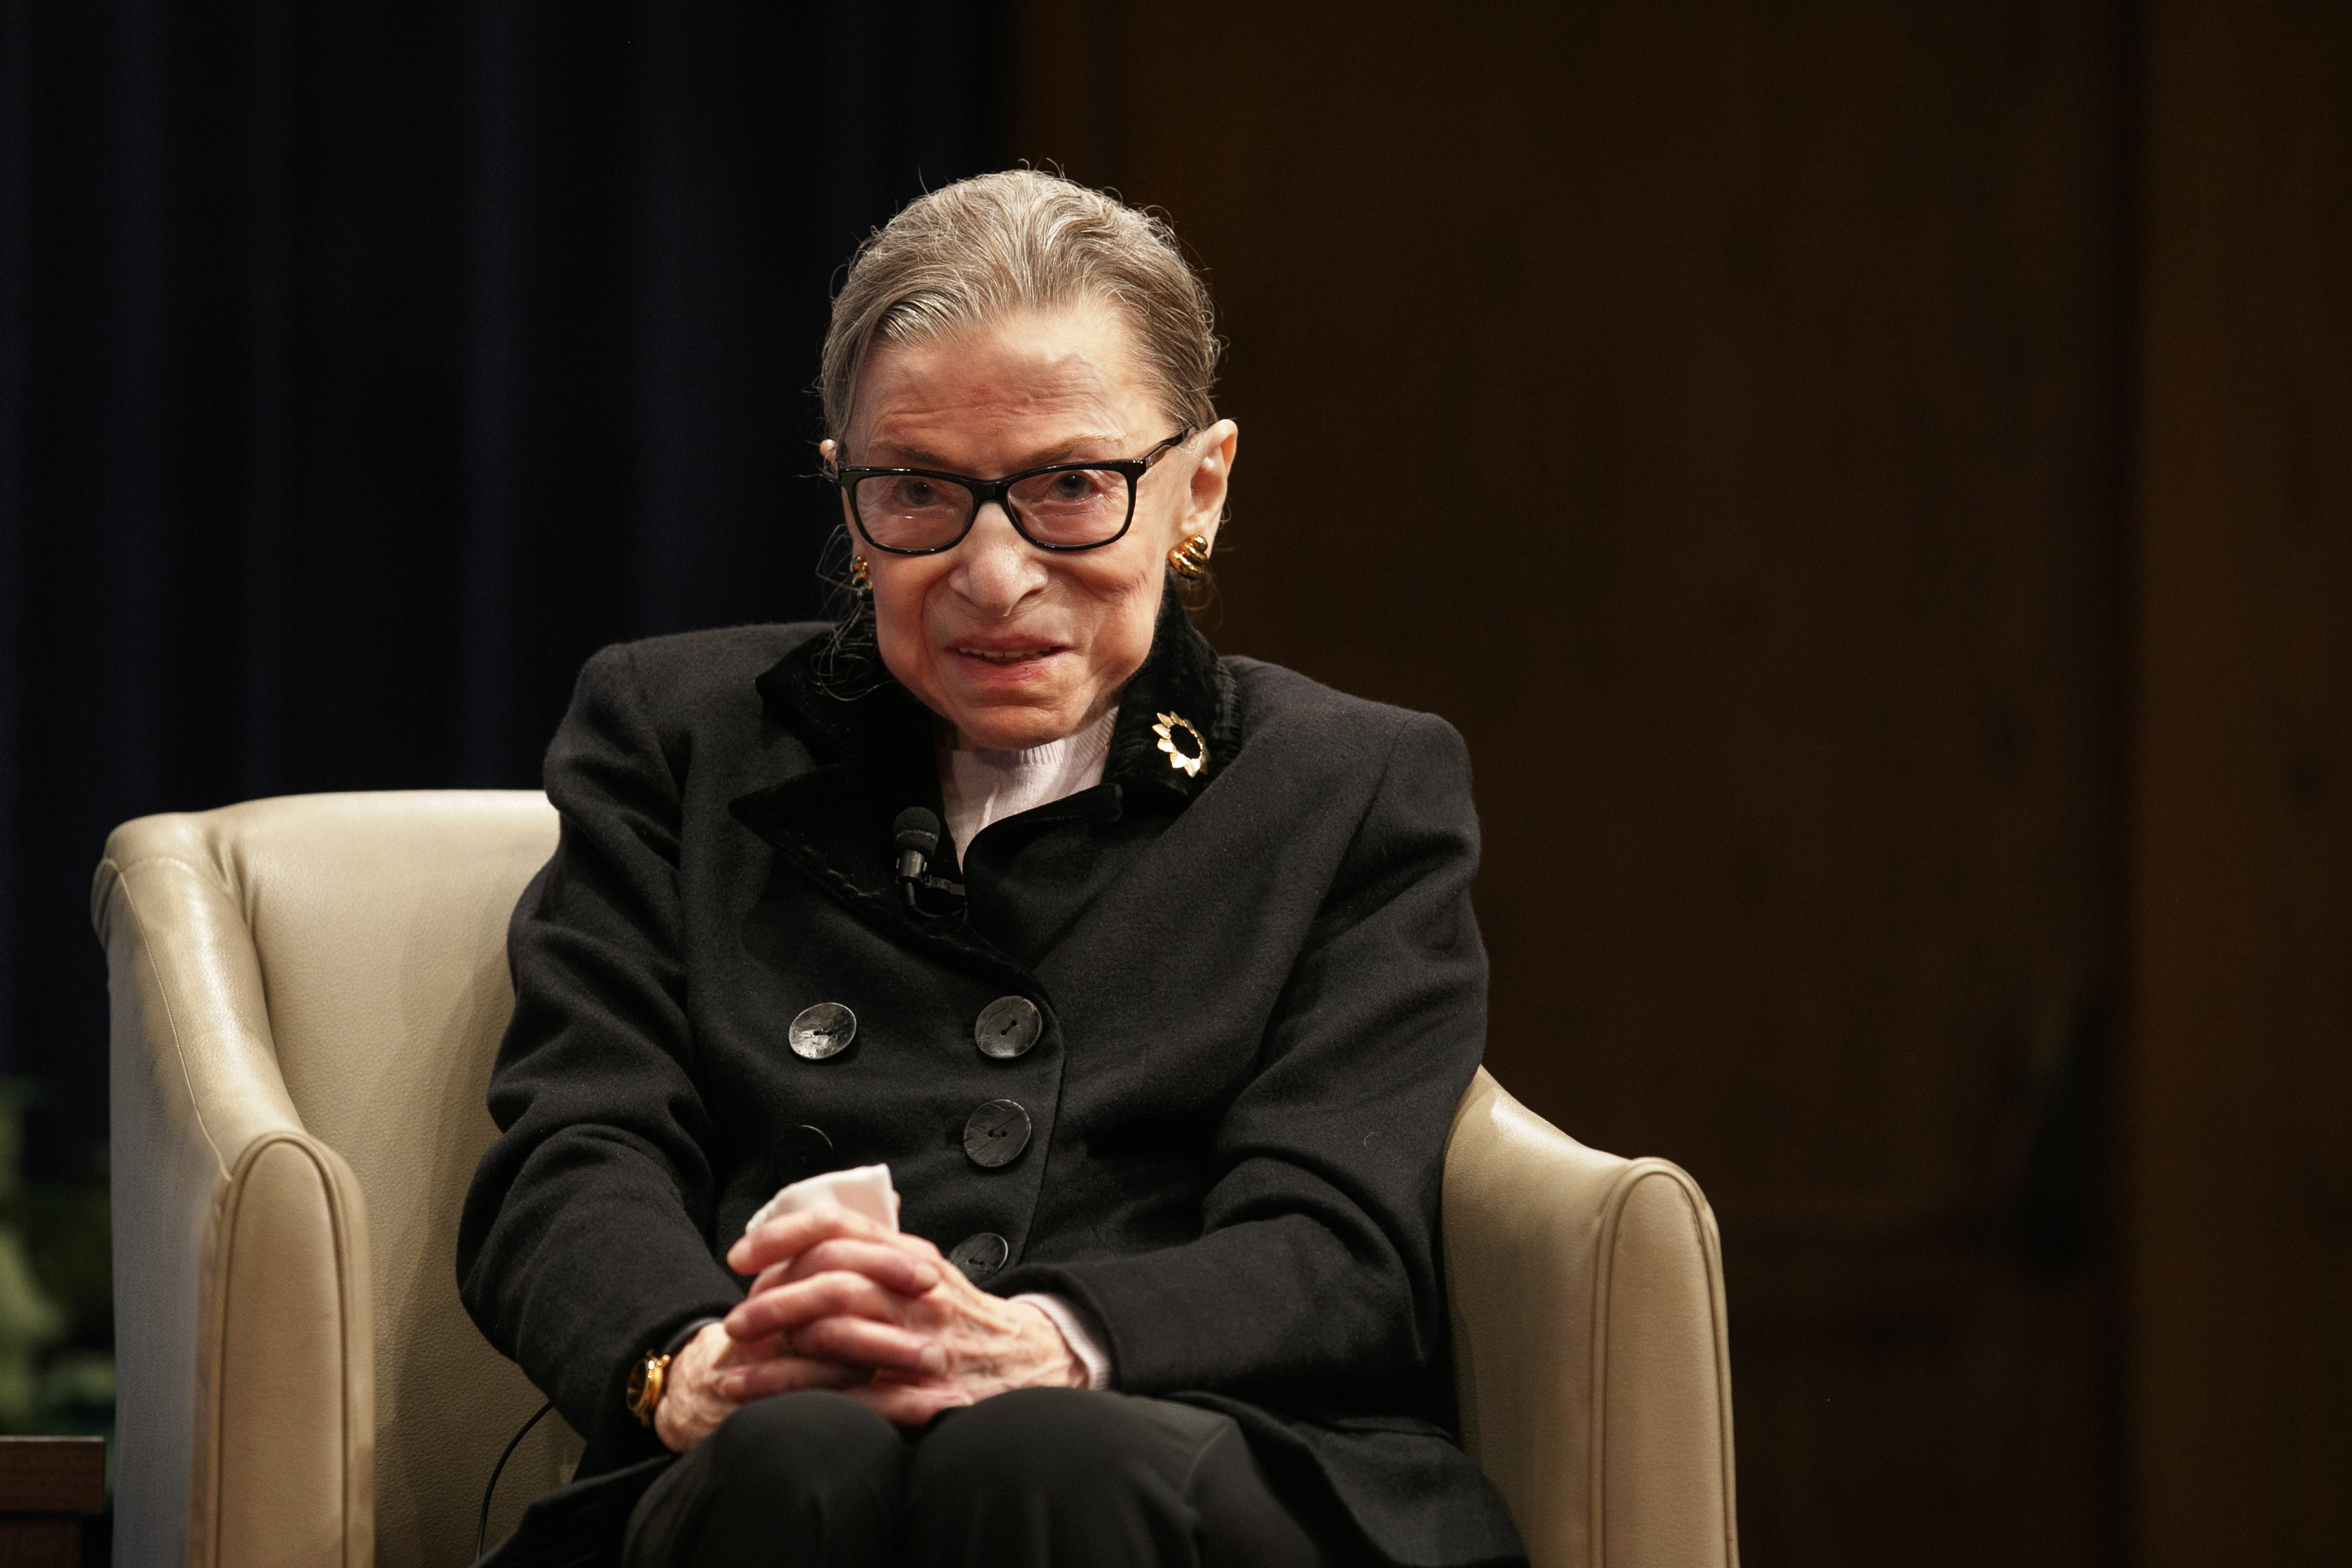 In this Oct. 30, 2019, file photo, Supreme Court Justice Ruth Bader Ginsburg attends Georgetown Law's second annual Ruth Bader Ginsburg Lecture in Washington. A tweet Monday, Aug. 31, 2020, from a new bride brought the first sighting of ailing Supreme Court Justice Ruth Bader Ginsburg in months — officiating at an outdoor wedding Sunday.